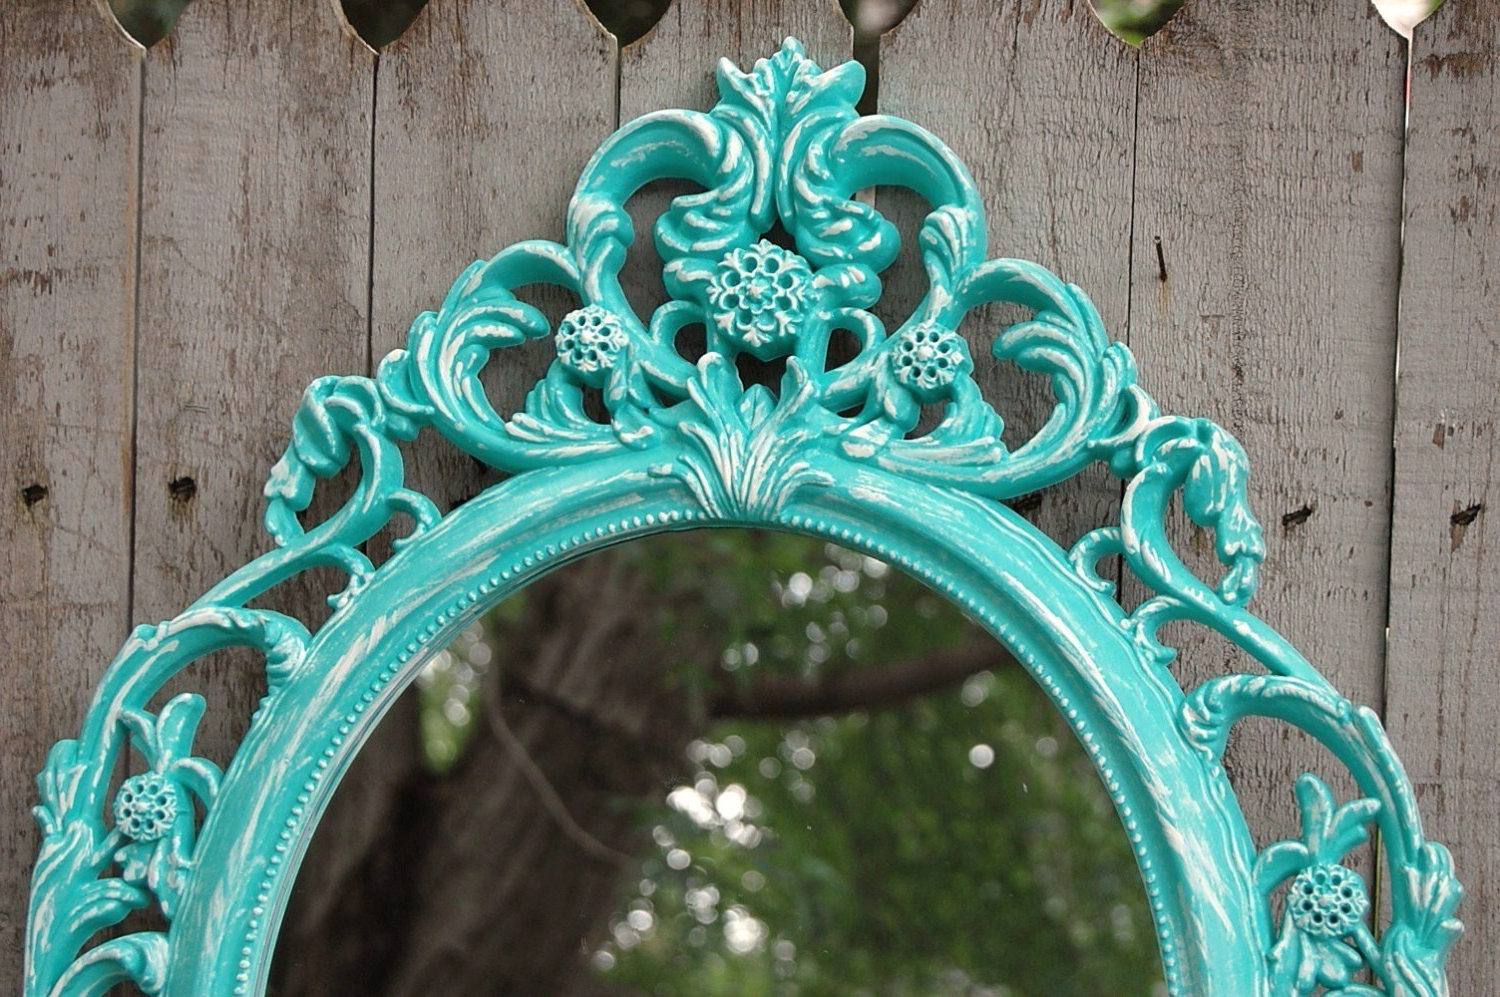 Best And Newest Aqua Wall Mirrors Within Shabby Chic Mirror, Wall Mirror, Baroque Mirror, Aqua, Turquoise, Blue, White, Oval, Upcycled, Ornate, Wedding Decor, Painted Mirror (View 7 of 20)